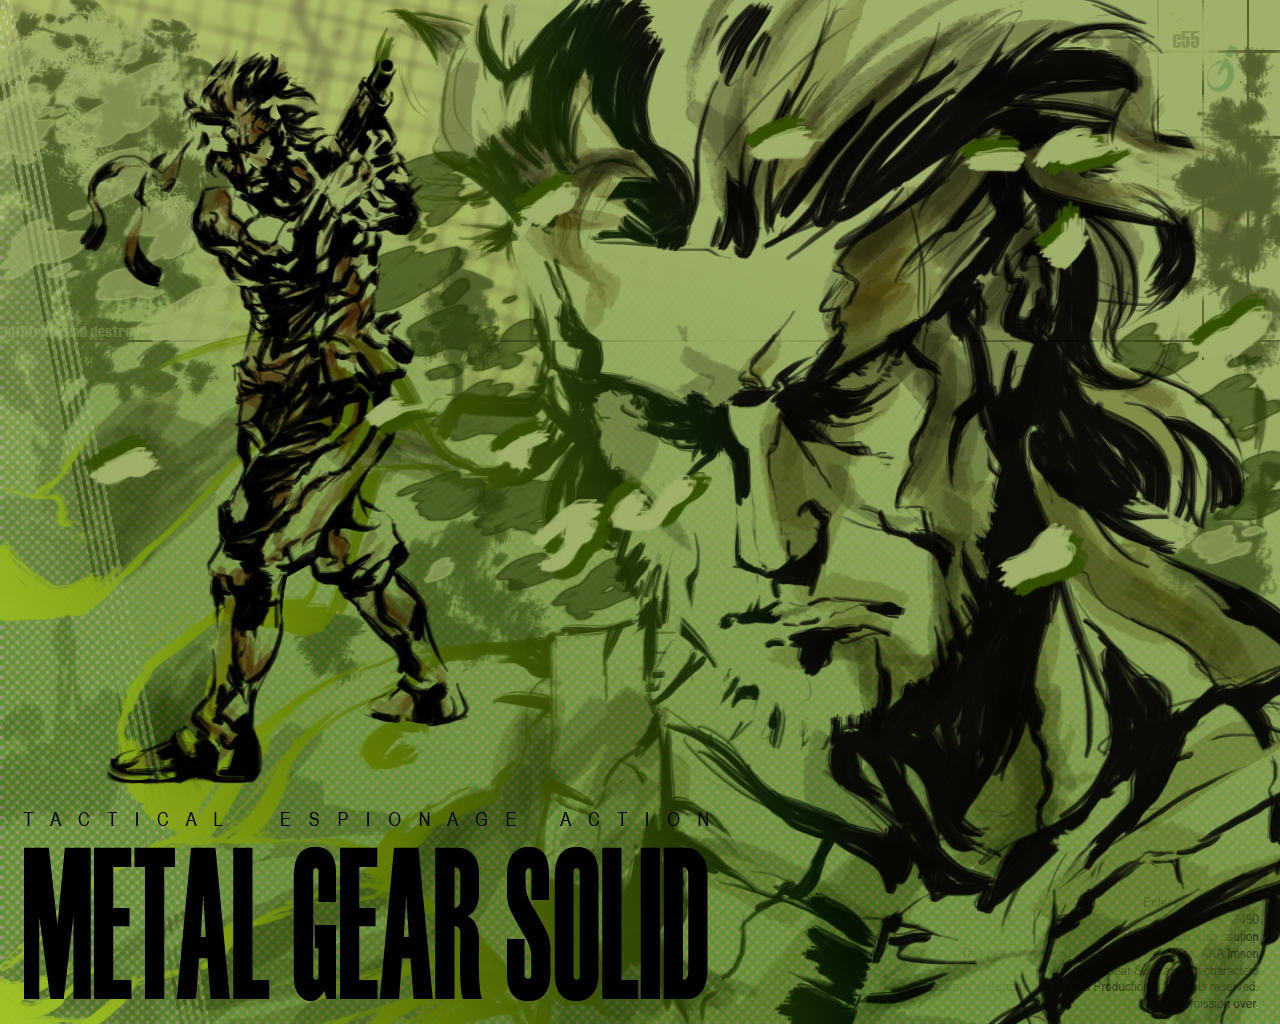 metal gear solid. wallpaperimson on deviantart